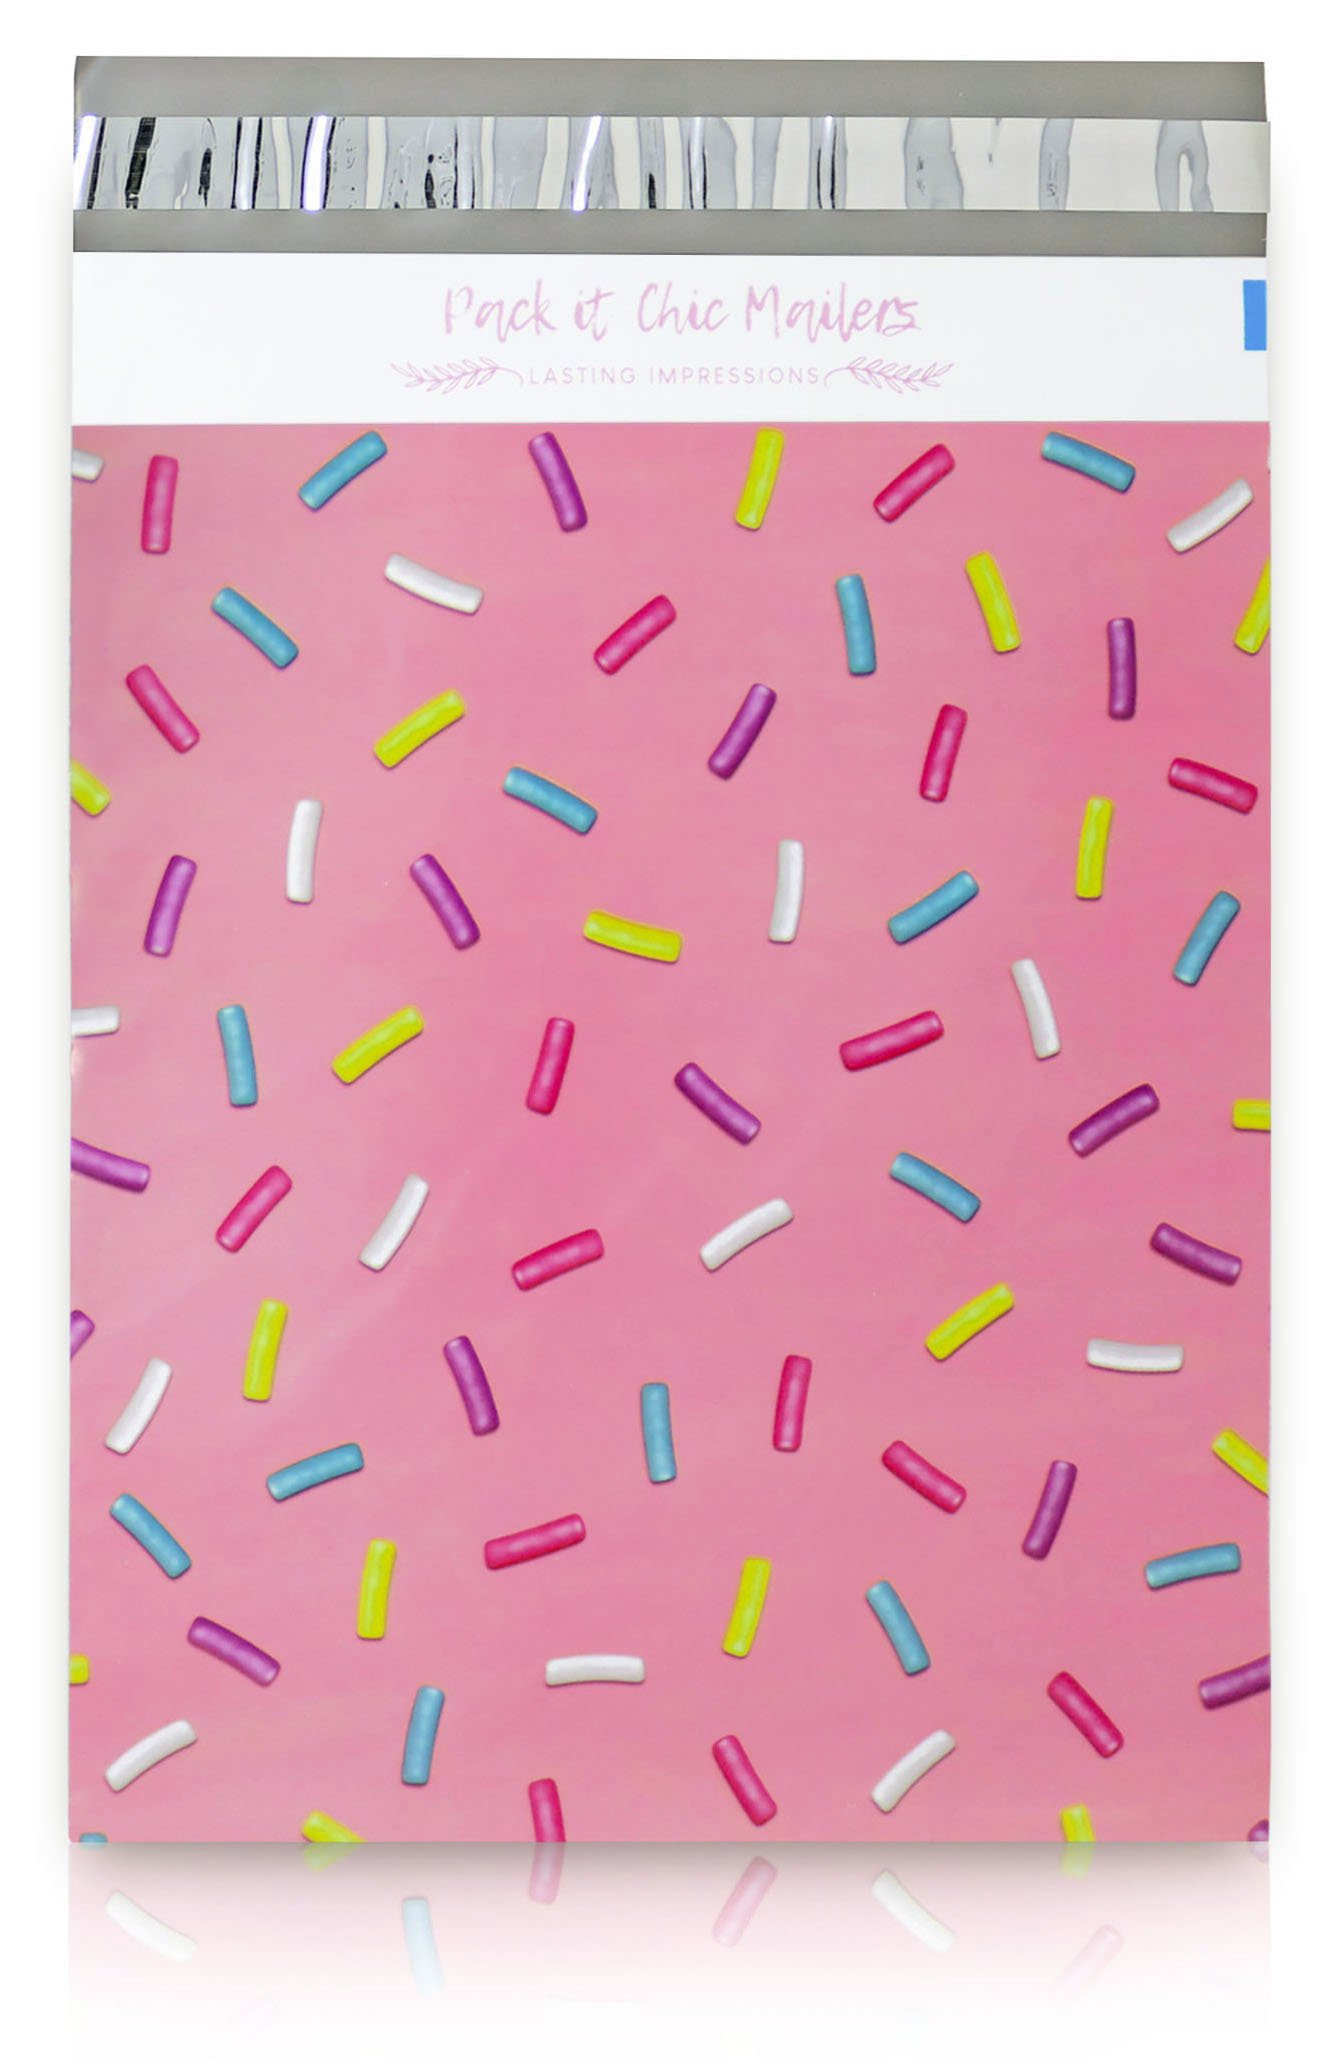 "Pack It Chic - 10"" X 13"" (100 Pack) Pink Sprinkles Poly Mailer Envelope Plastic Custom Mailing & Shipping Bags - Self Seal (More Designs Available)"